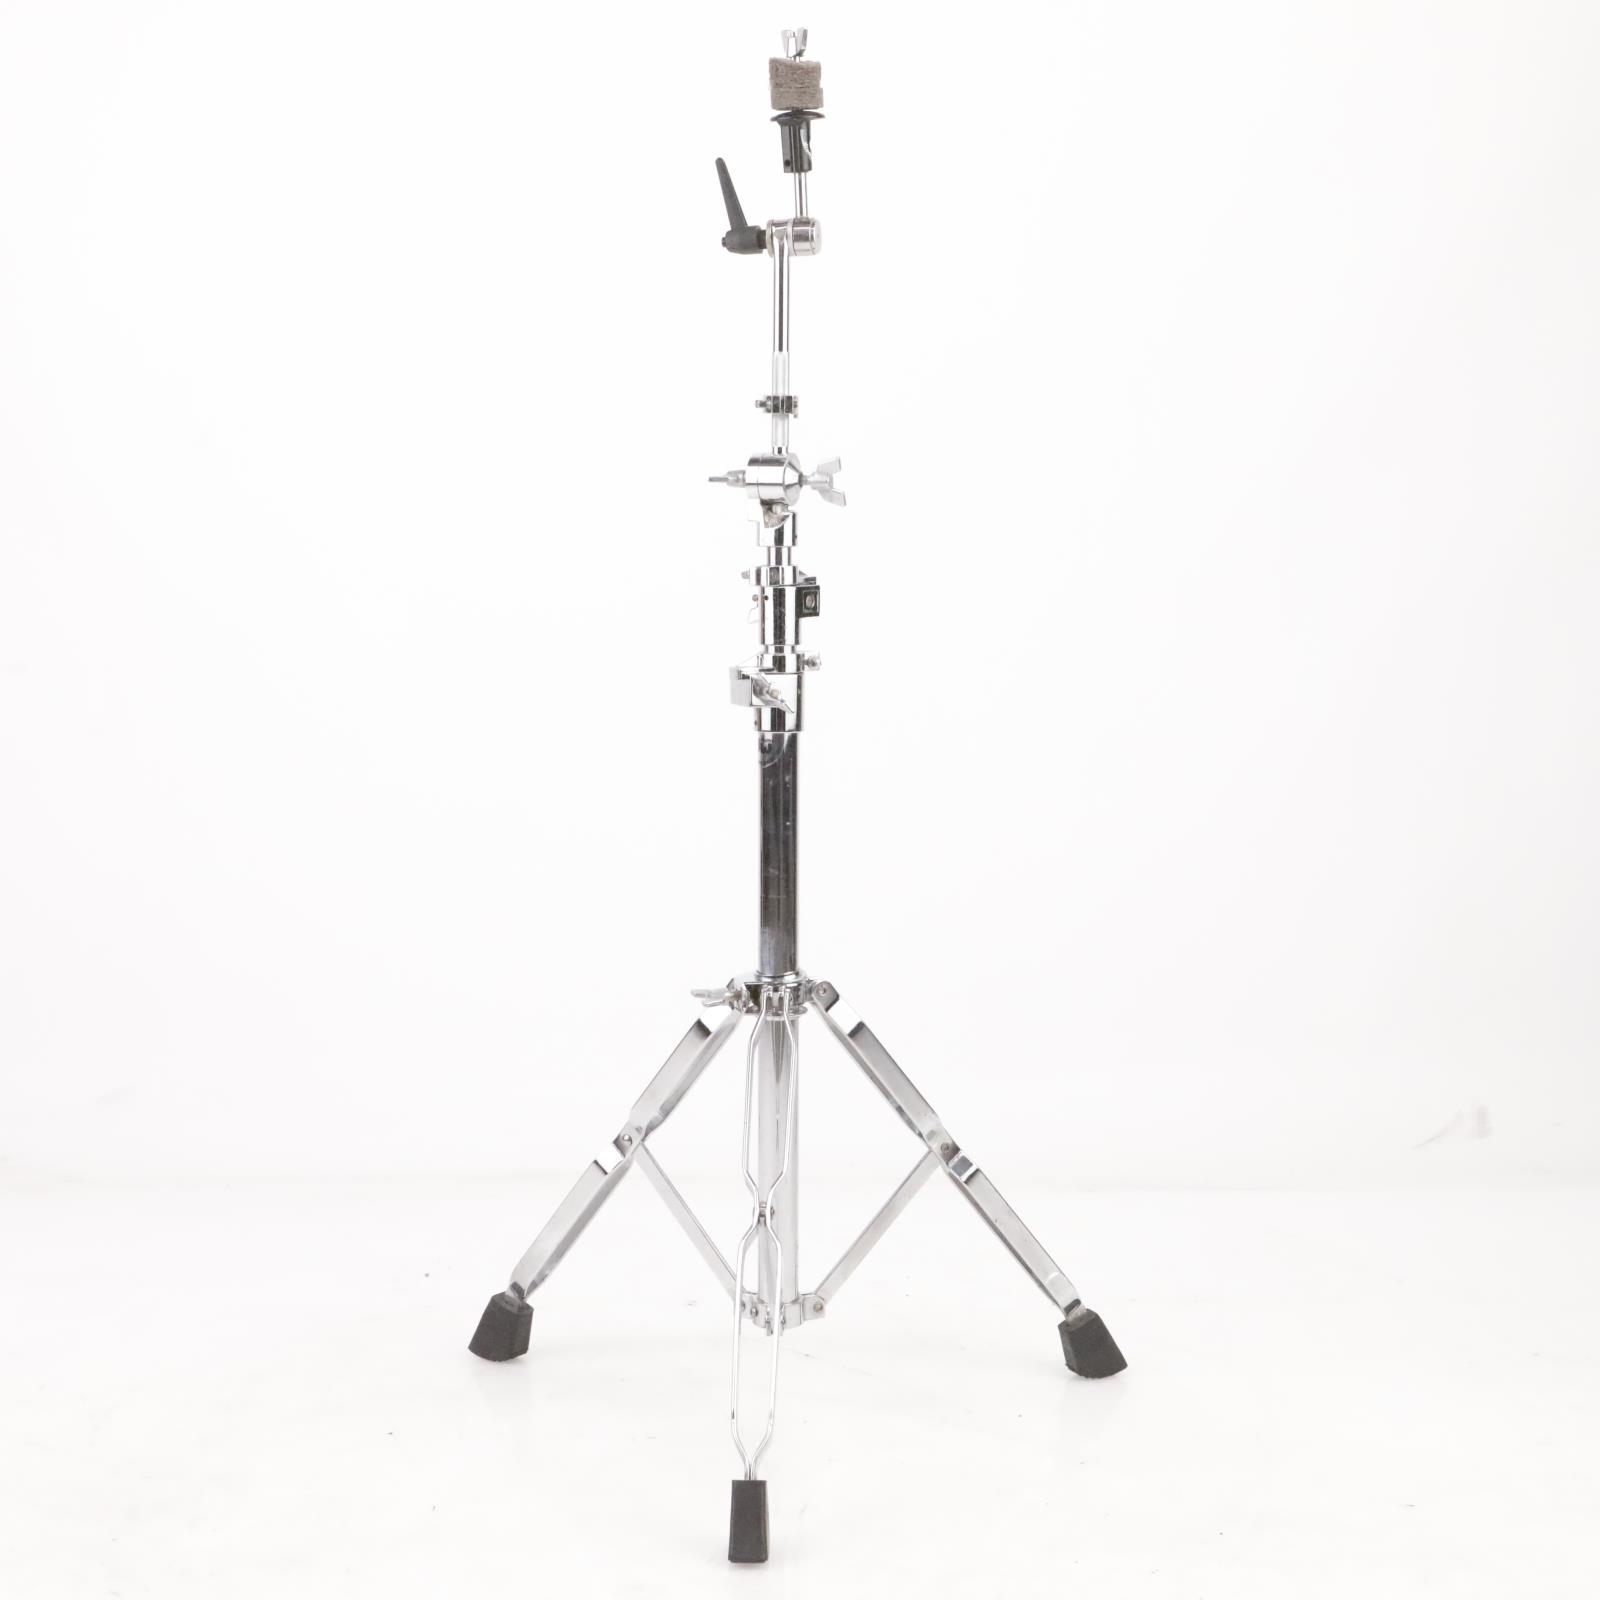 DW 9710 Heavy Duty Double Braced Straight Boom Cymbal Stand Drum Hardware #39532